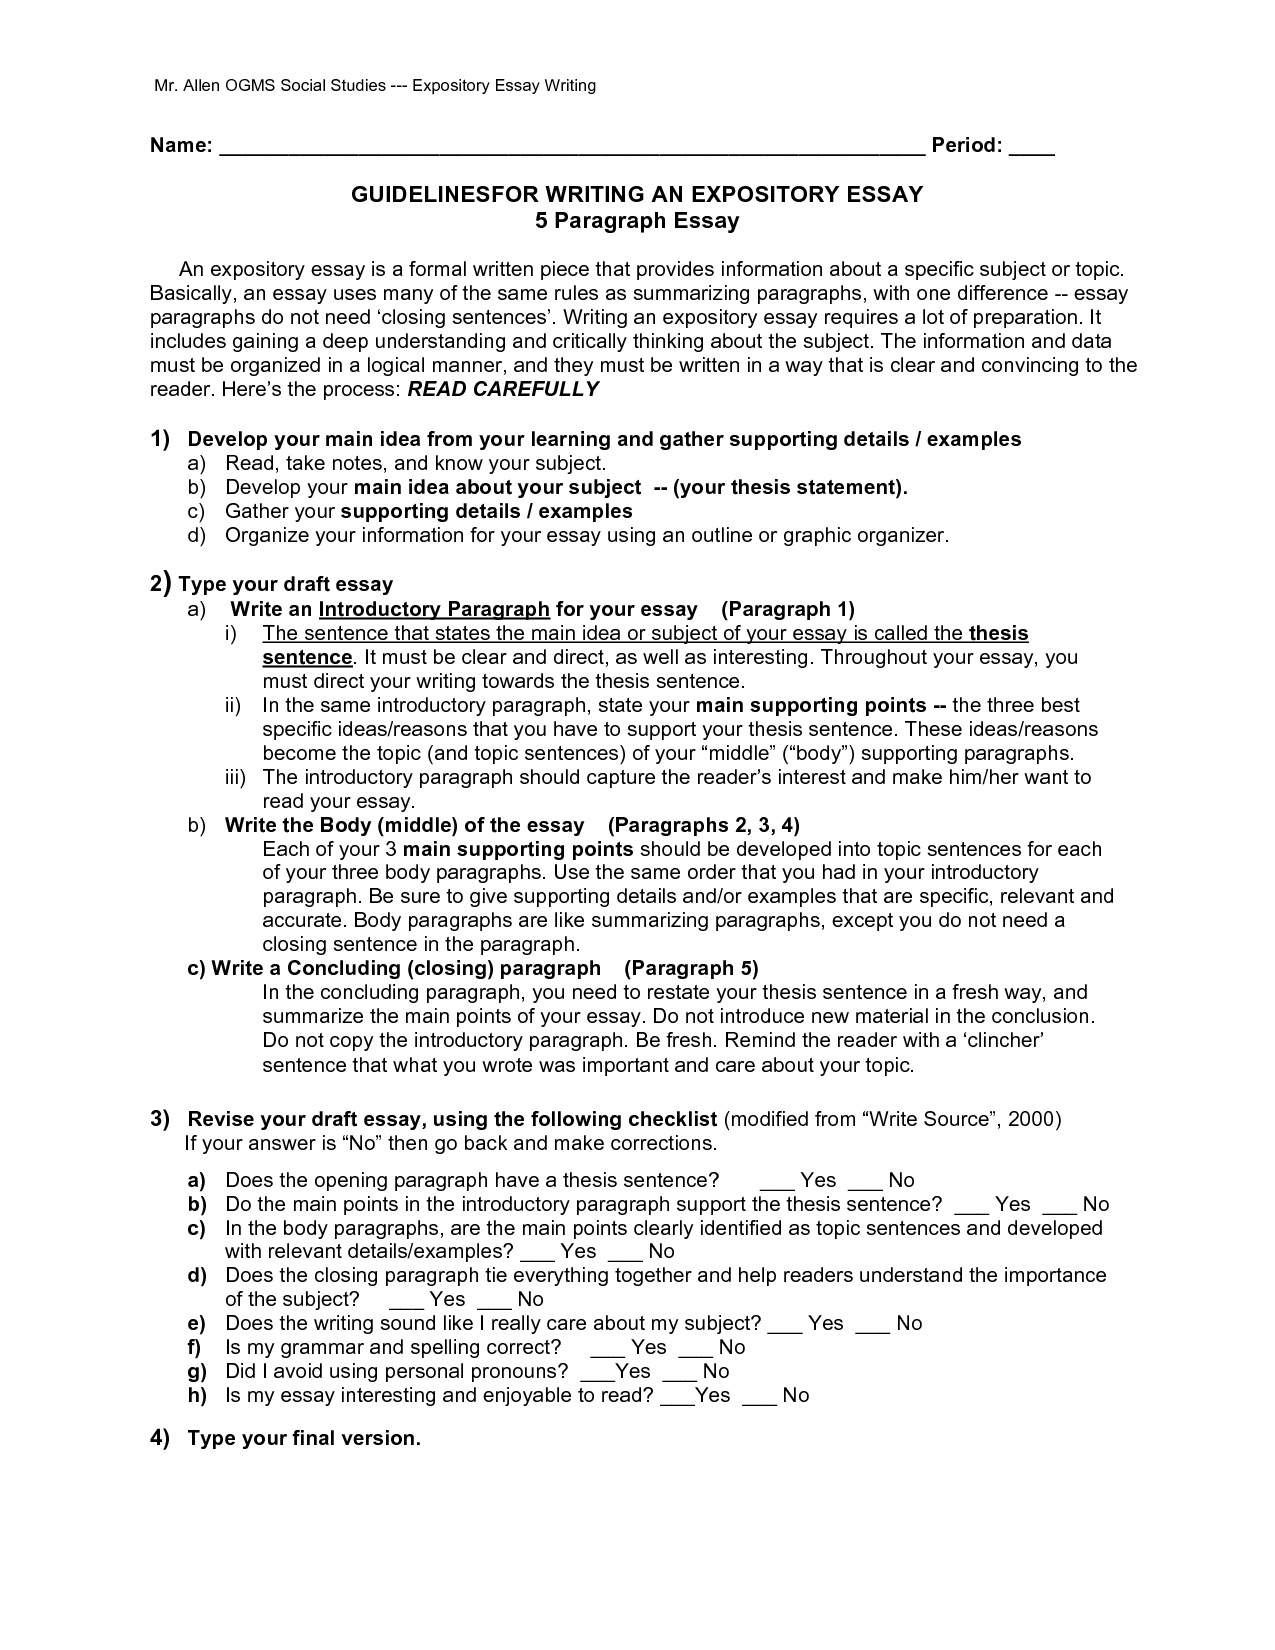 012 Paragraph Expository Essay Example 569202 Stupendous Sample 5 Camping Pdf For 4th Grade Full